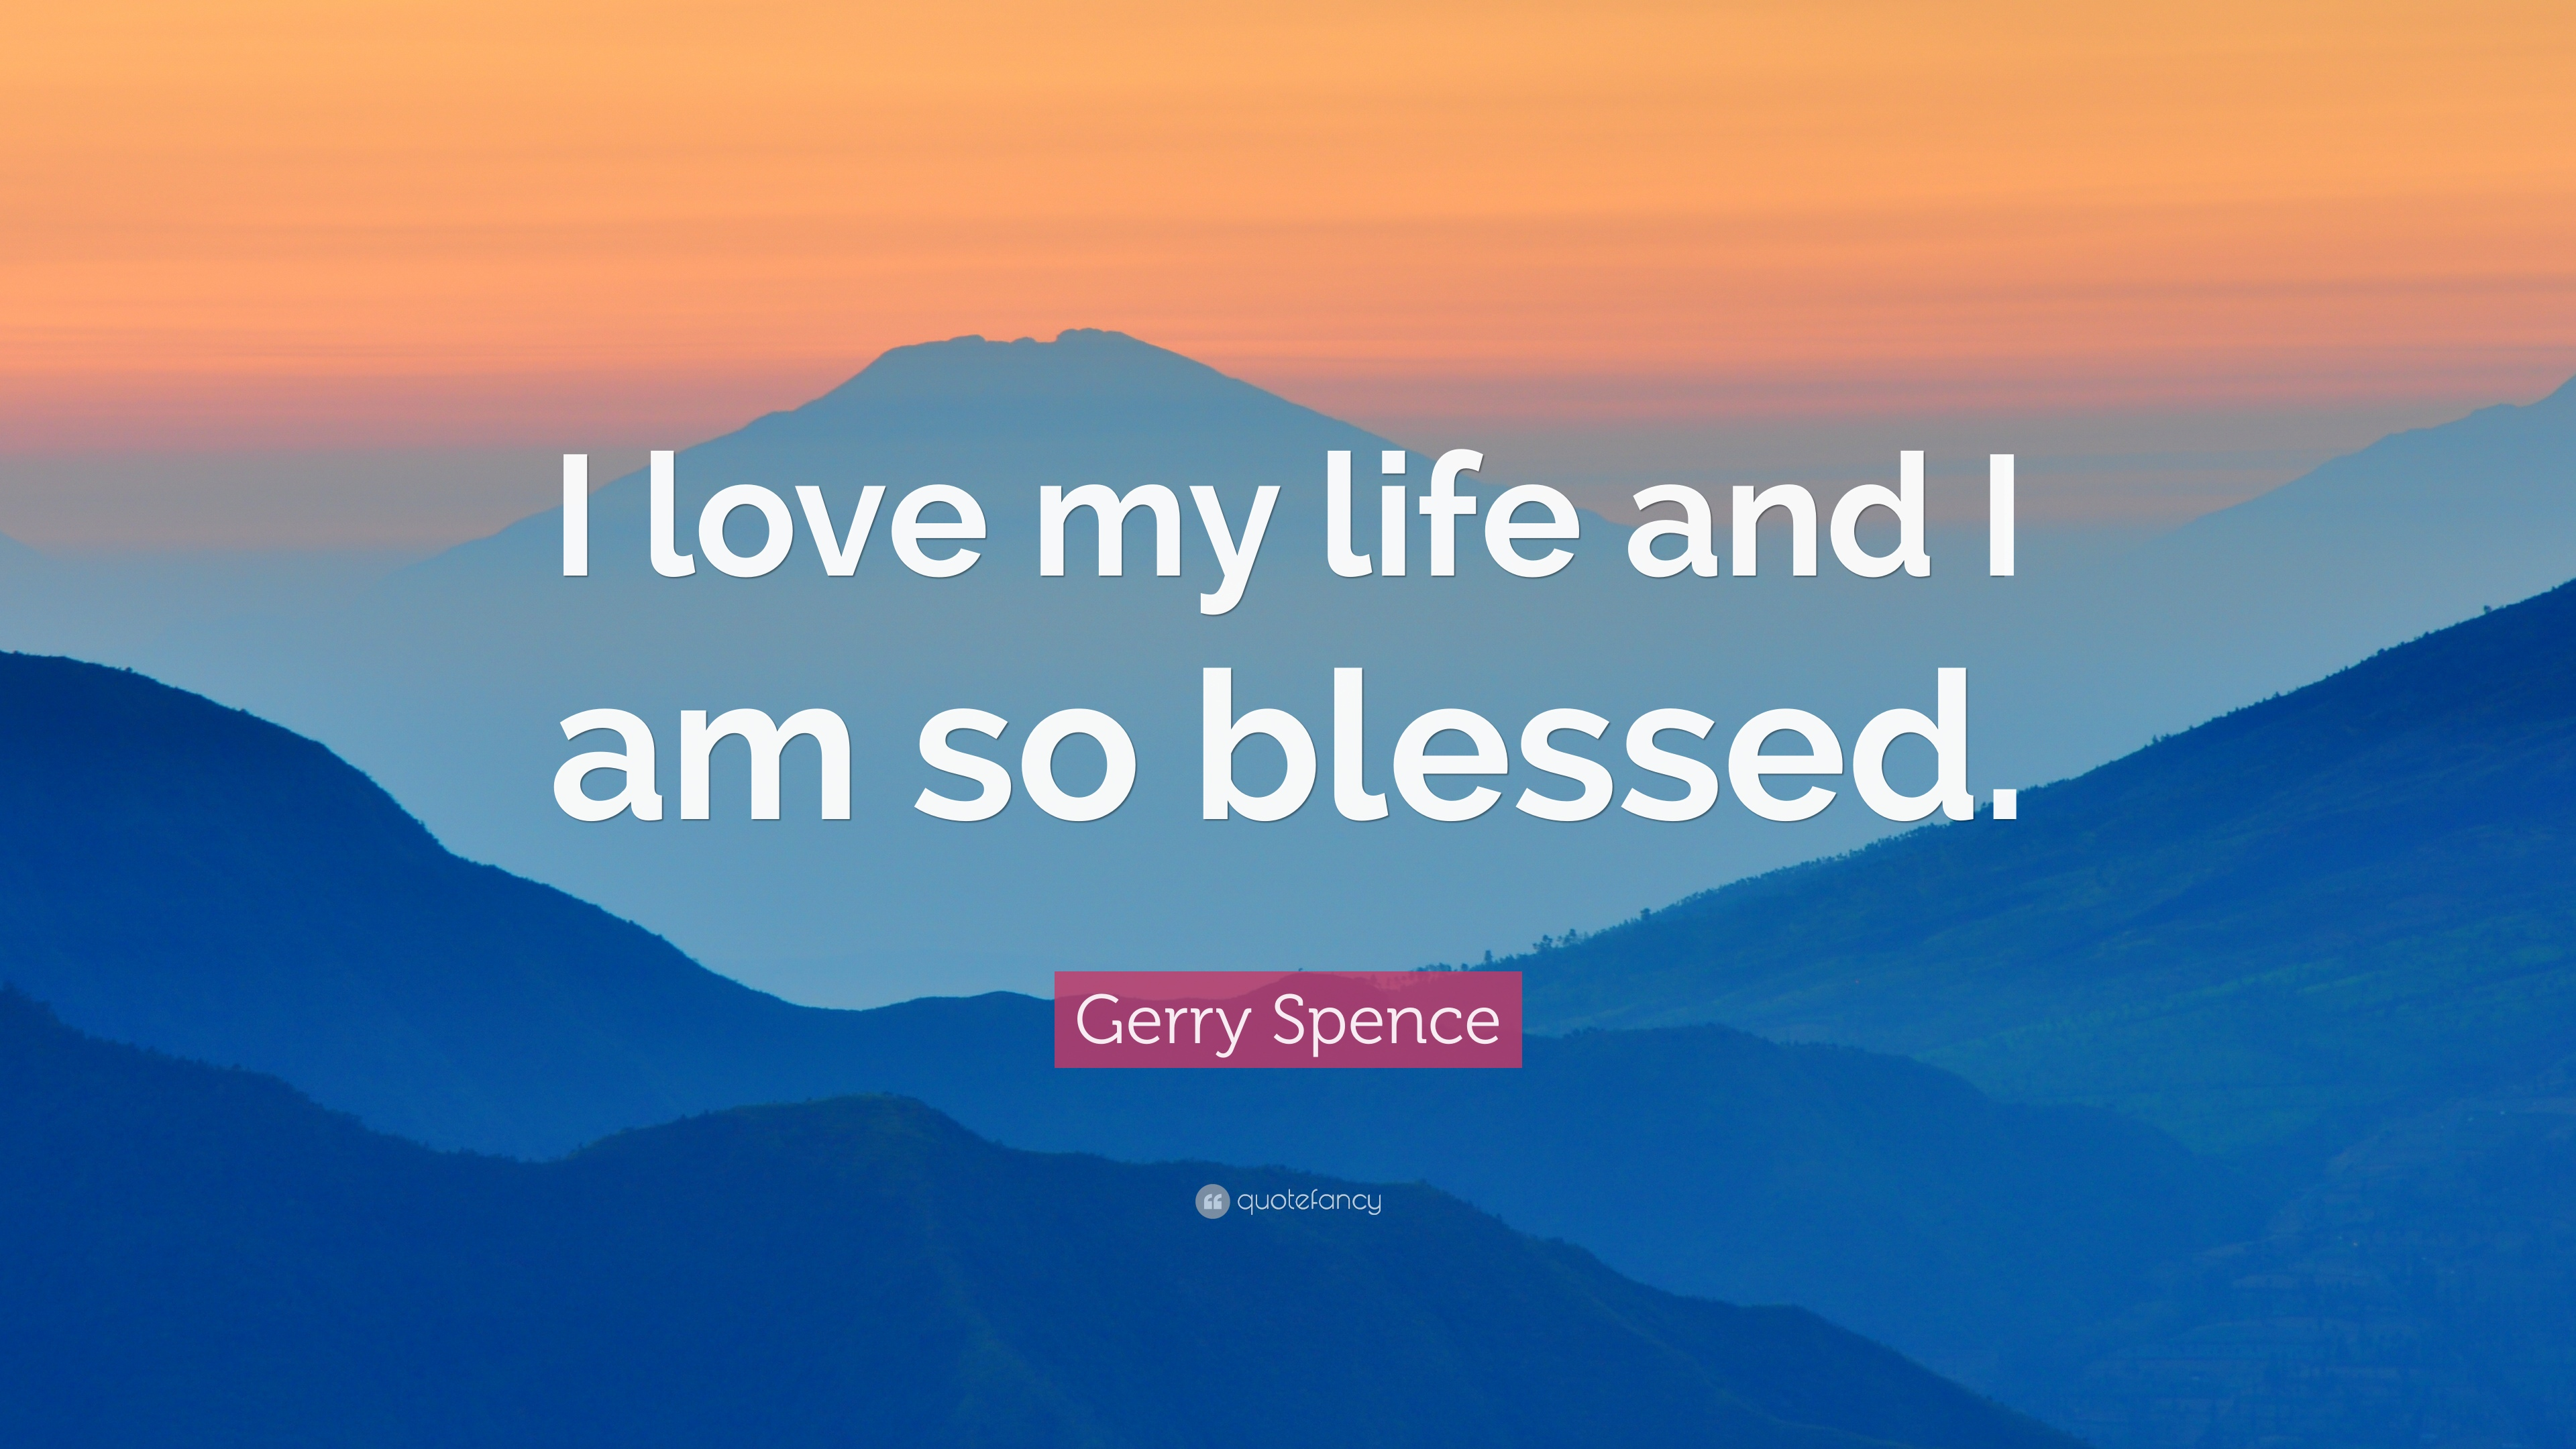 I Am Blessed Wallpaper Gerry Spence Quote: �...